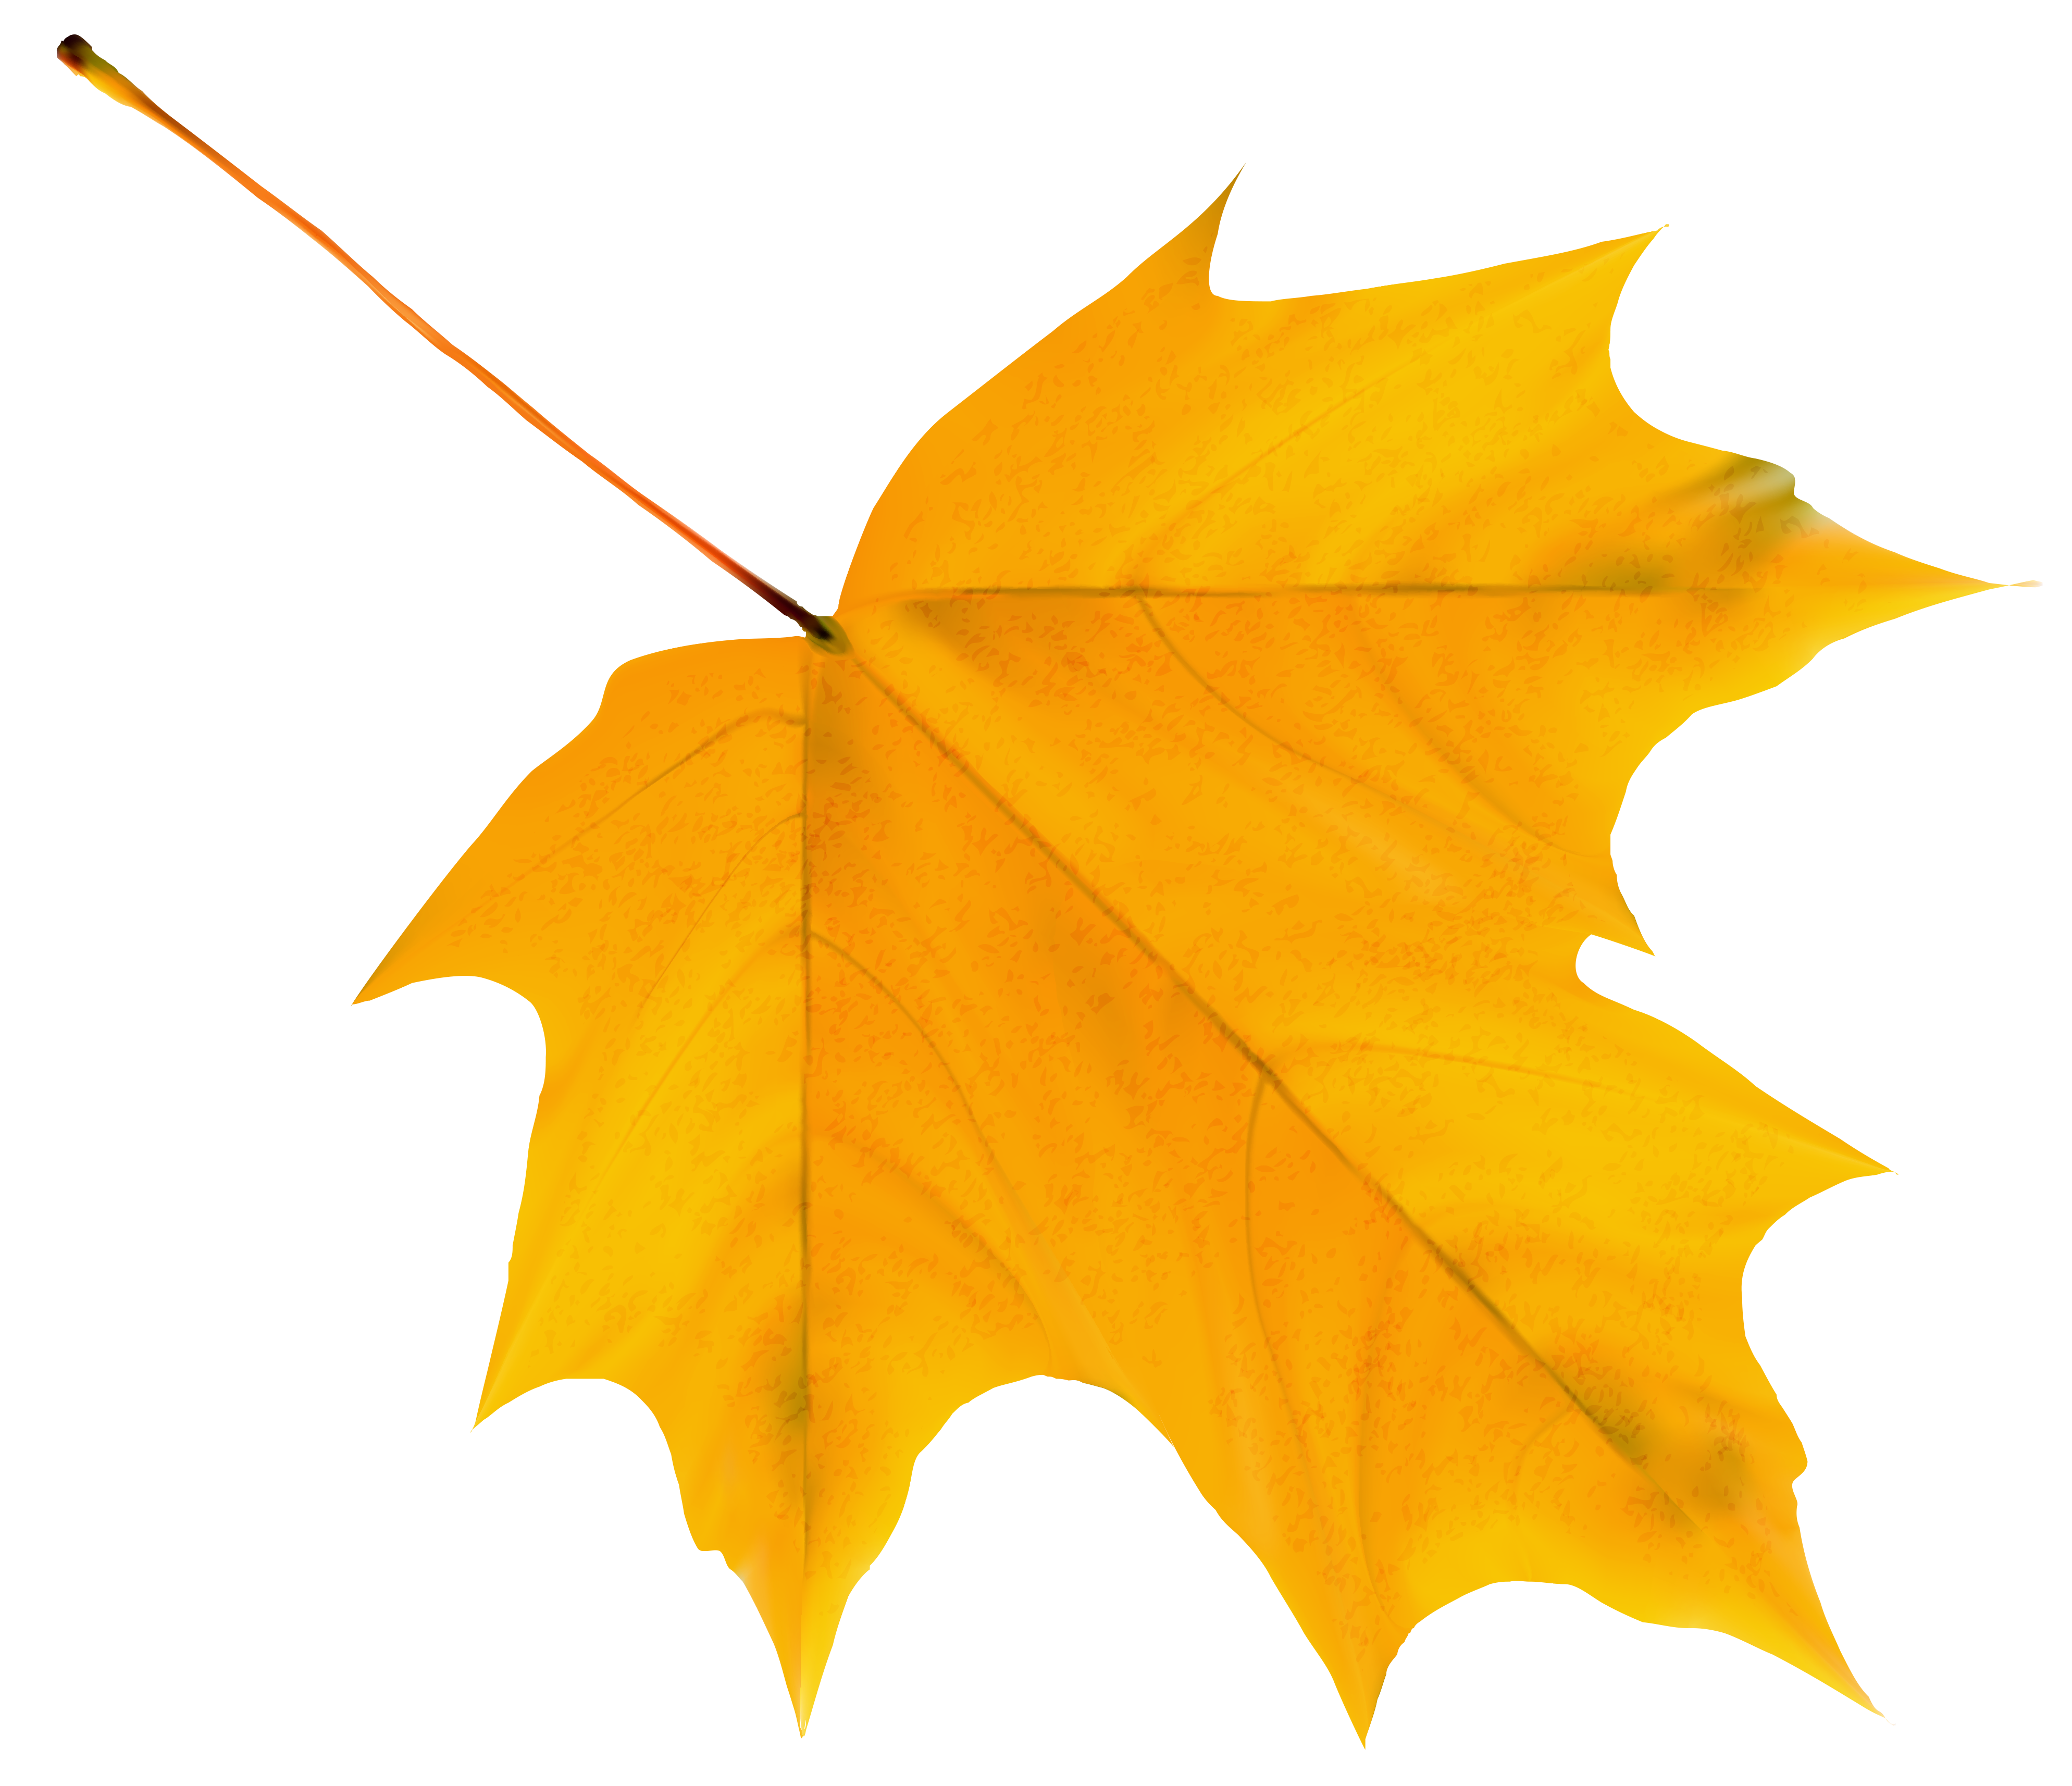 Fall leaf png. Yellow autumn clipart image